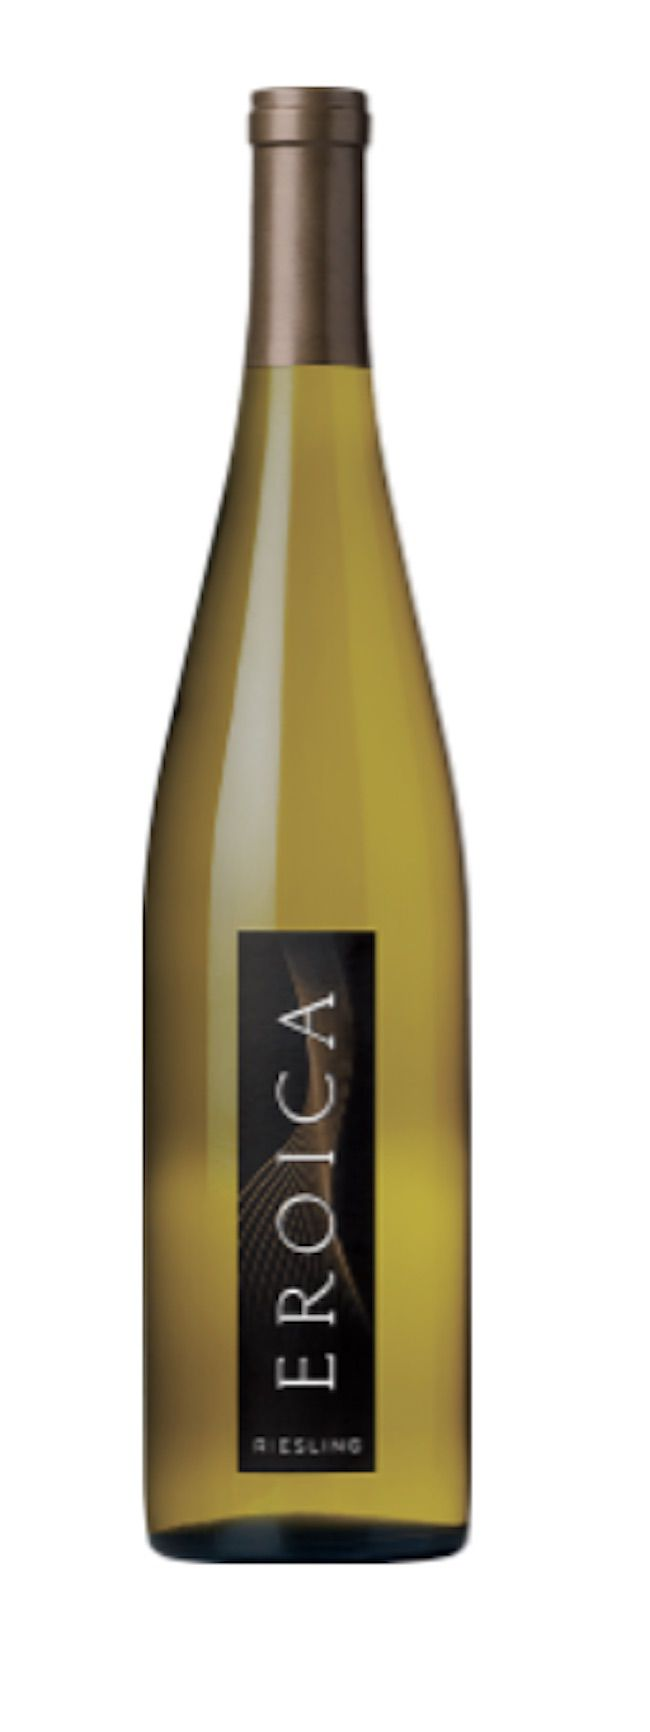 Chateau St. Michelle Eroica Riesling